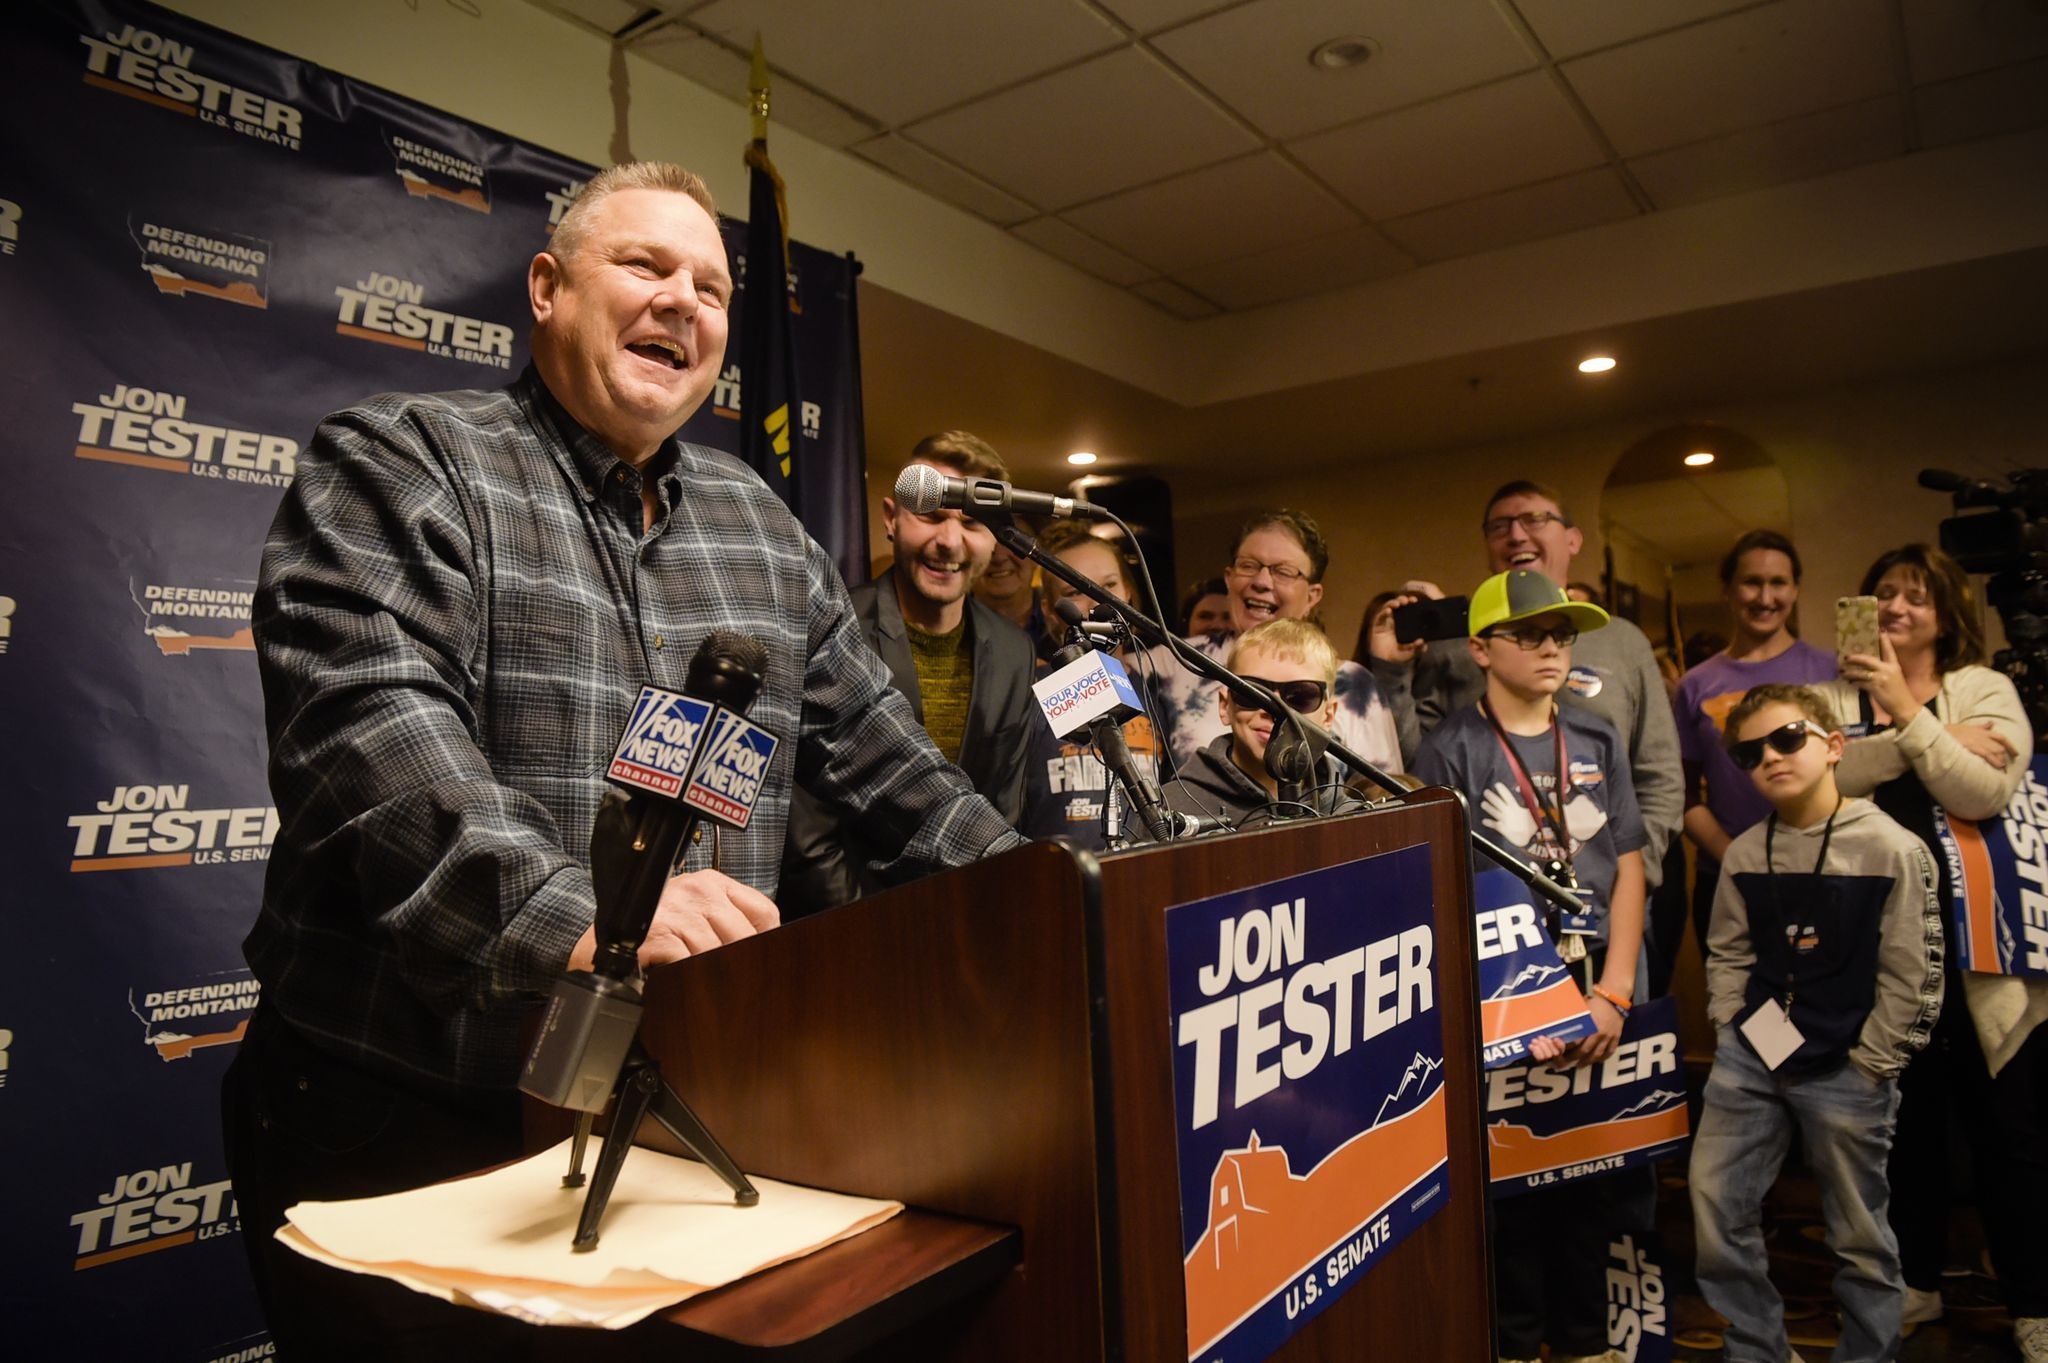 Montana Sen. Jon Tester wins tight re-election bid in race targeted by Trump, AP reports